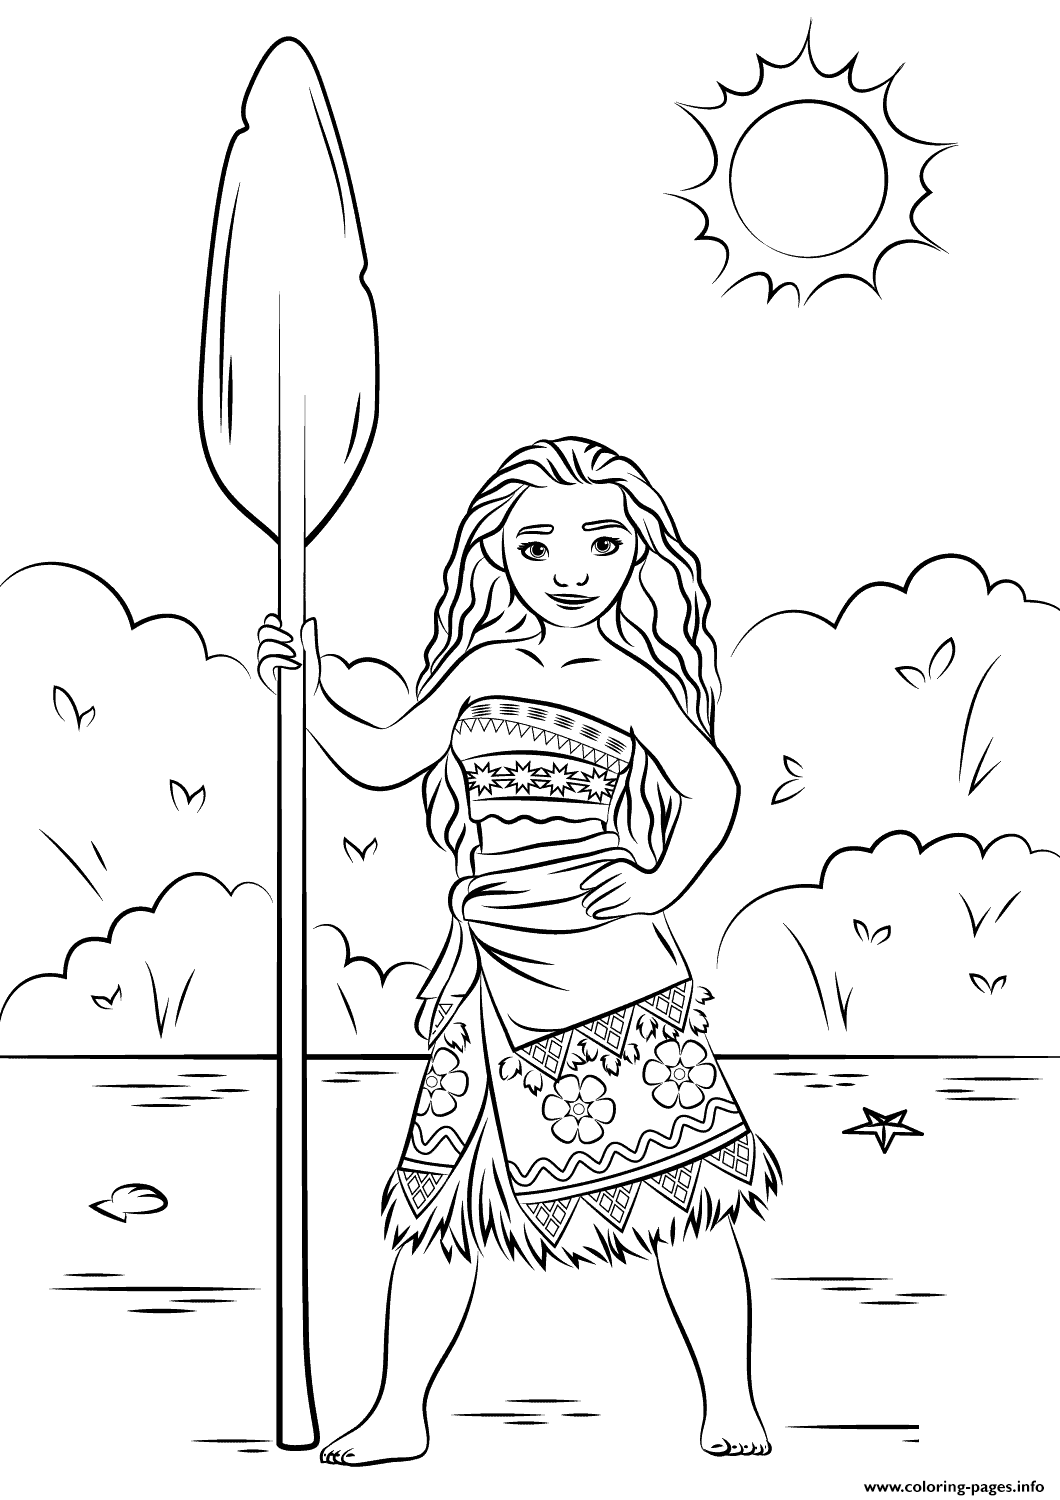 photo regarding Moana Coloring Pages Printable titled Print princess moana disney coloring internet pages Incredibly Papers